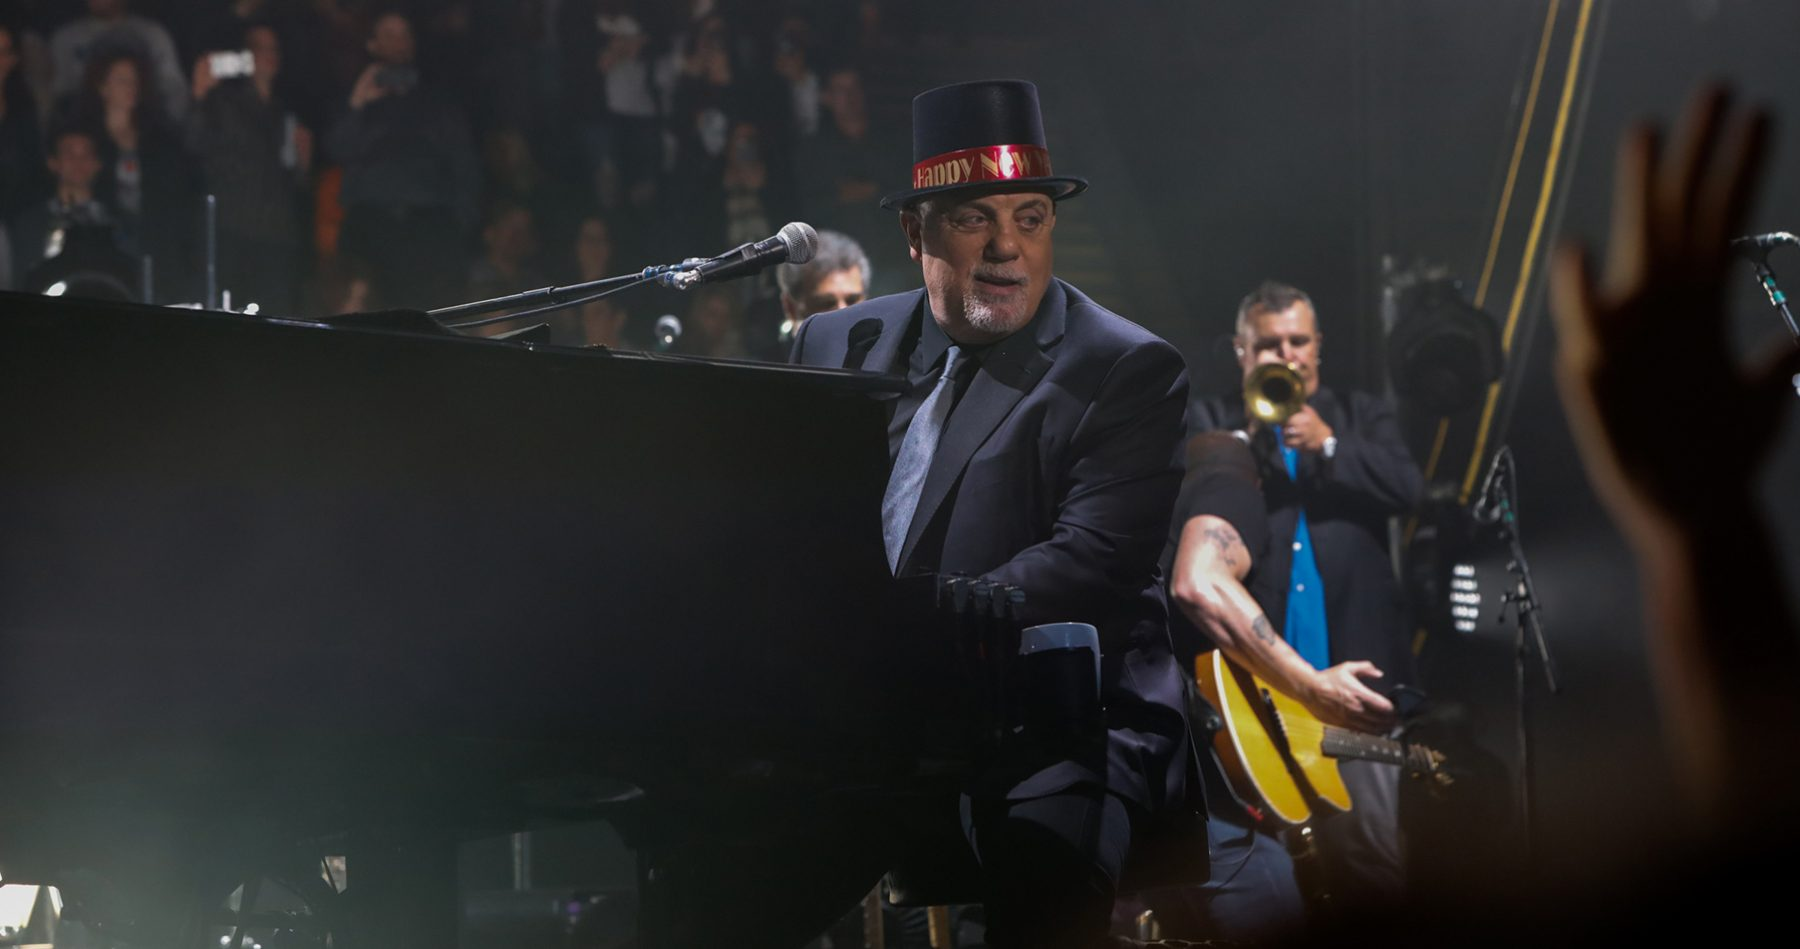 Billy Joel in concert New Year's Eve at Nassau Coliseum Uniondale, NY December 31, 2018